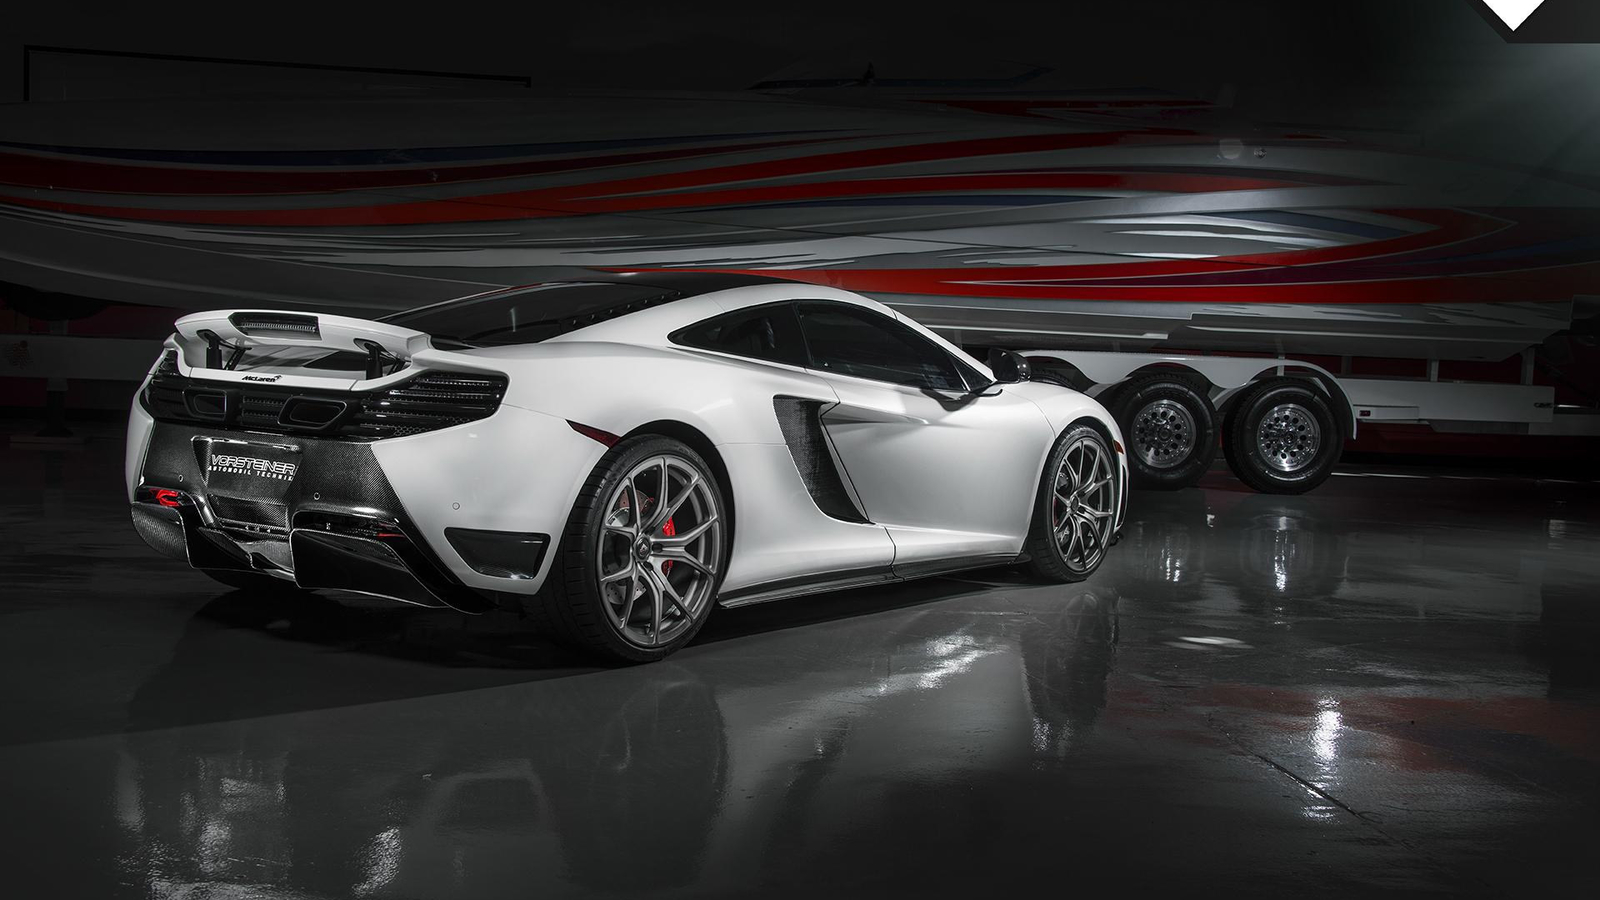 McLaren supercar wallpaper download 49782